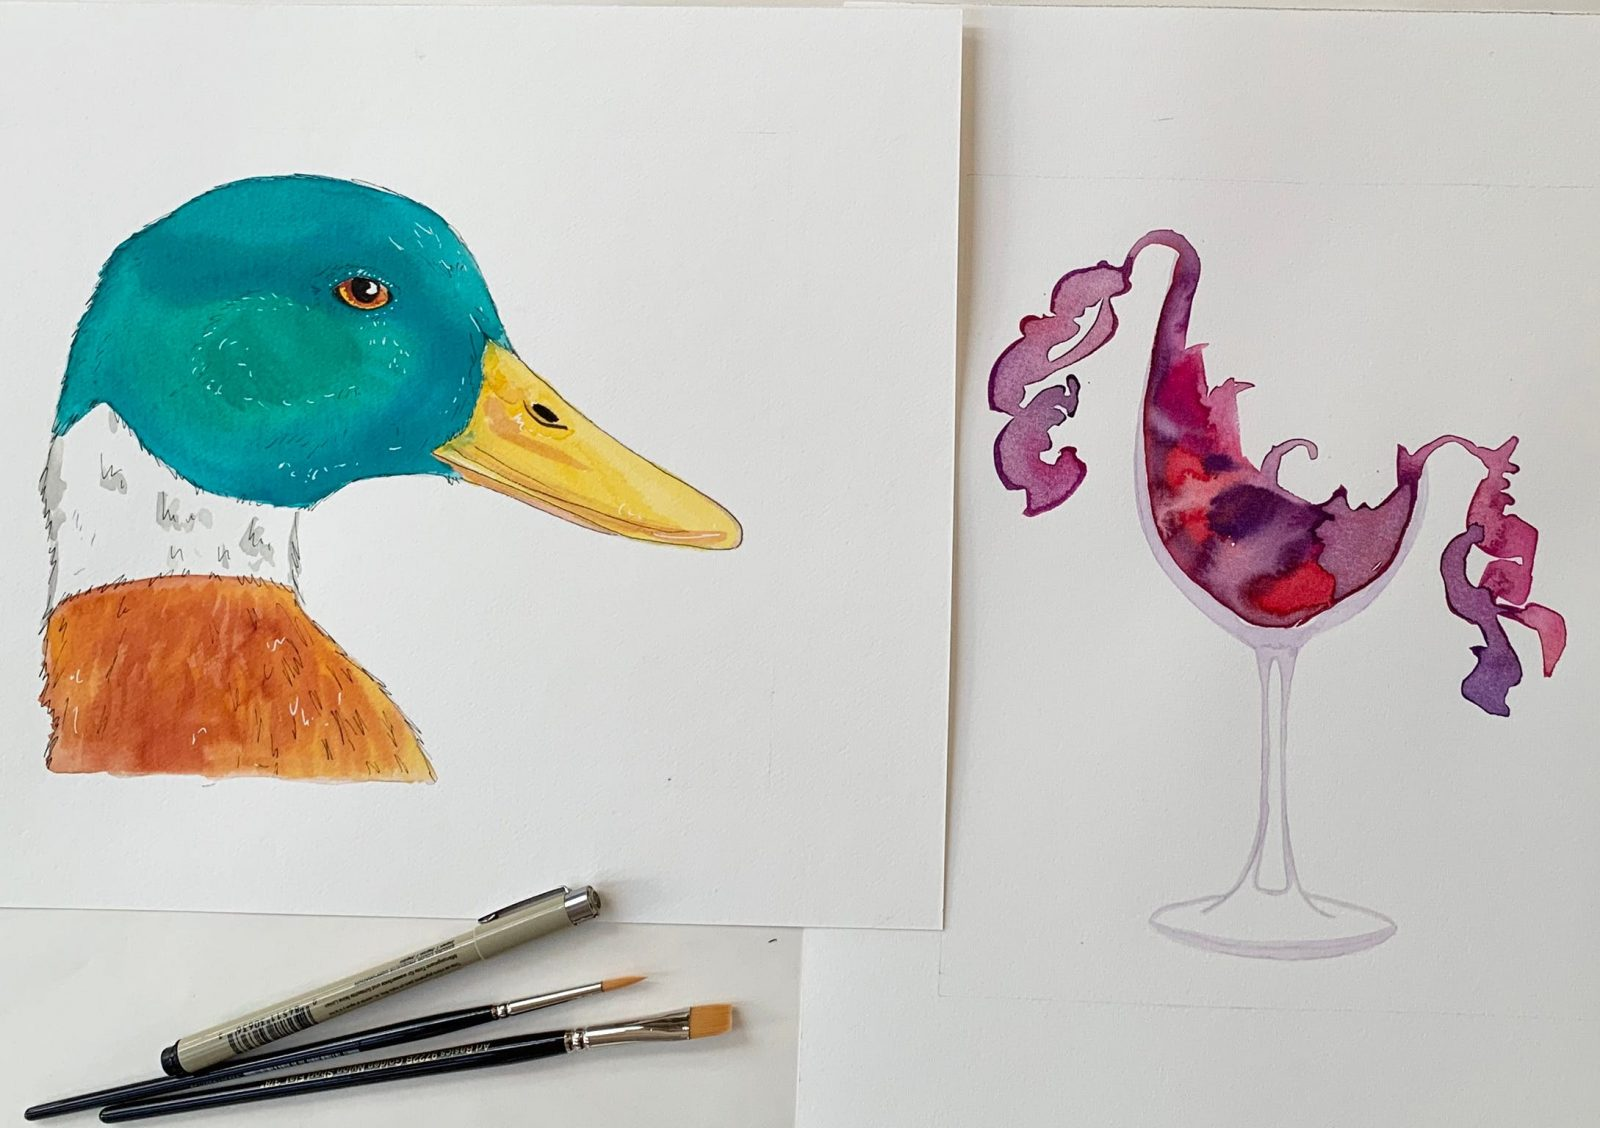 A painting of a duck and a wine glass with brushes and pen